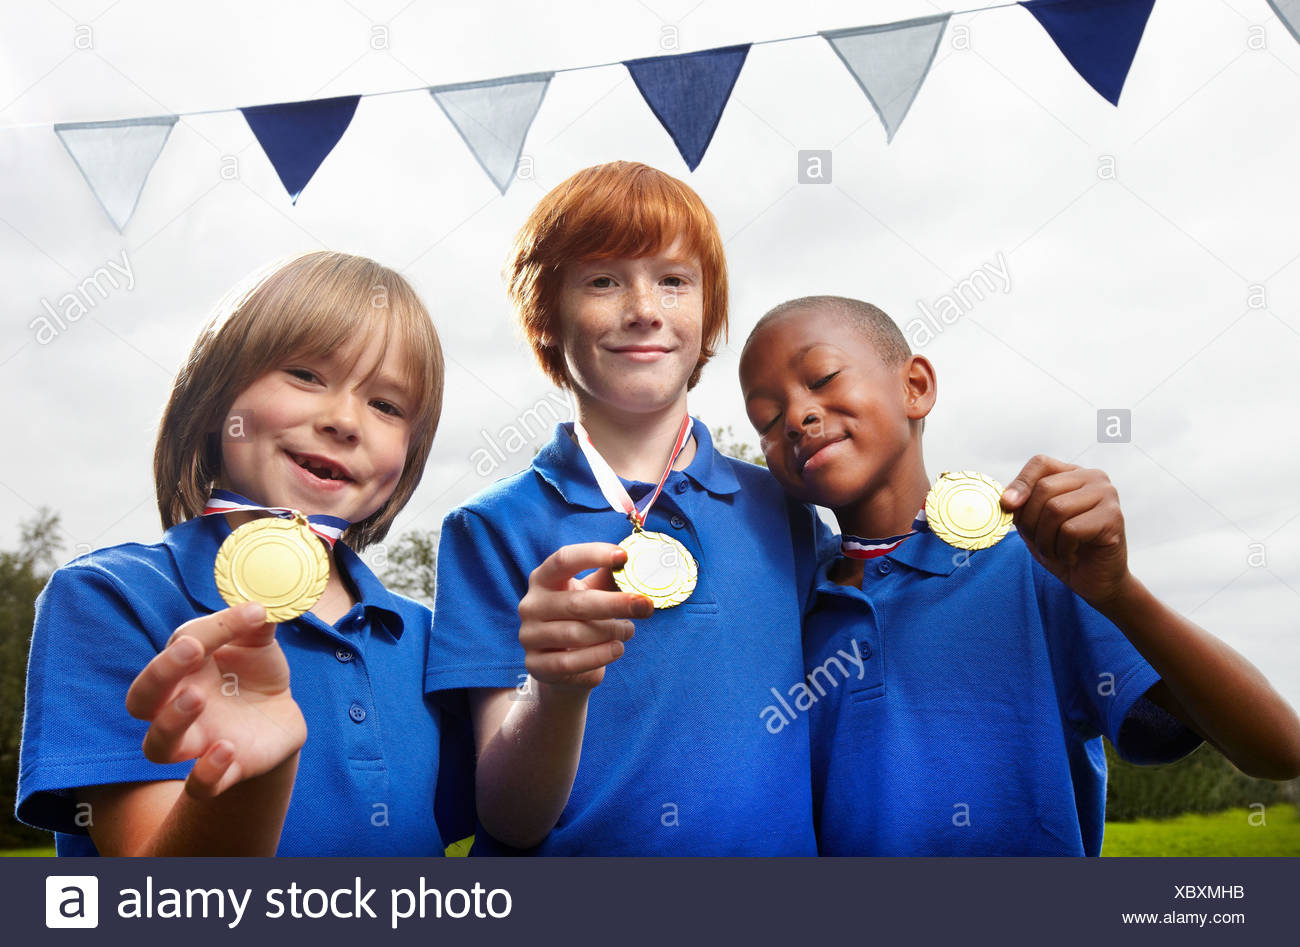 School boys holding medals for sporting achievement - Stock Image